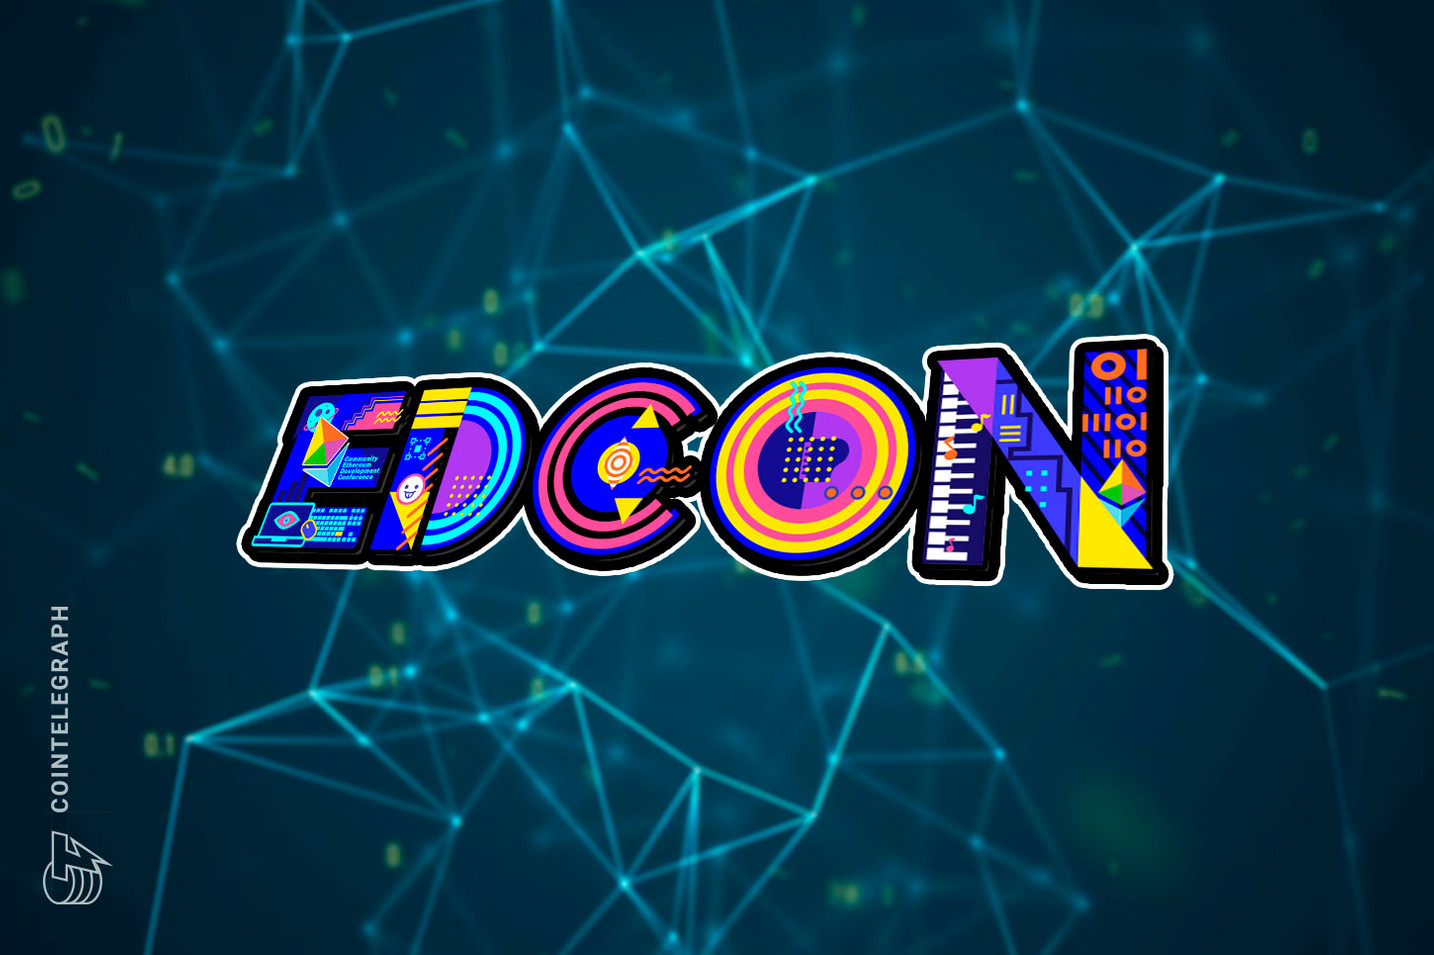 EDCON 2020 Takes Place Virtually on August 9-11